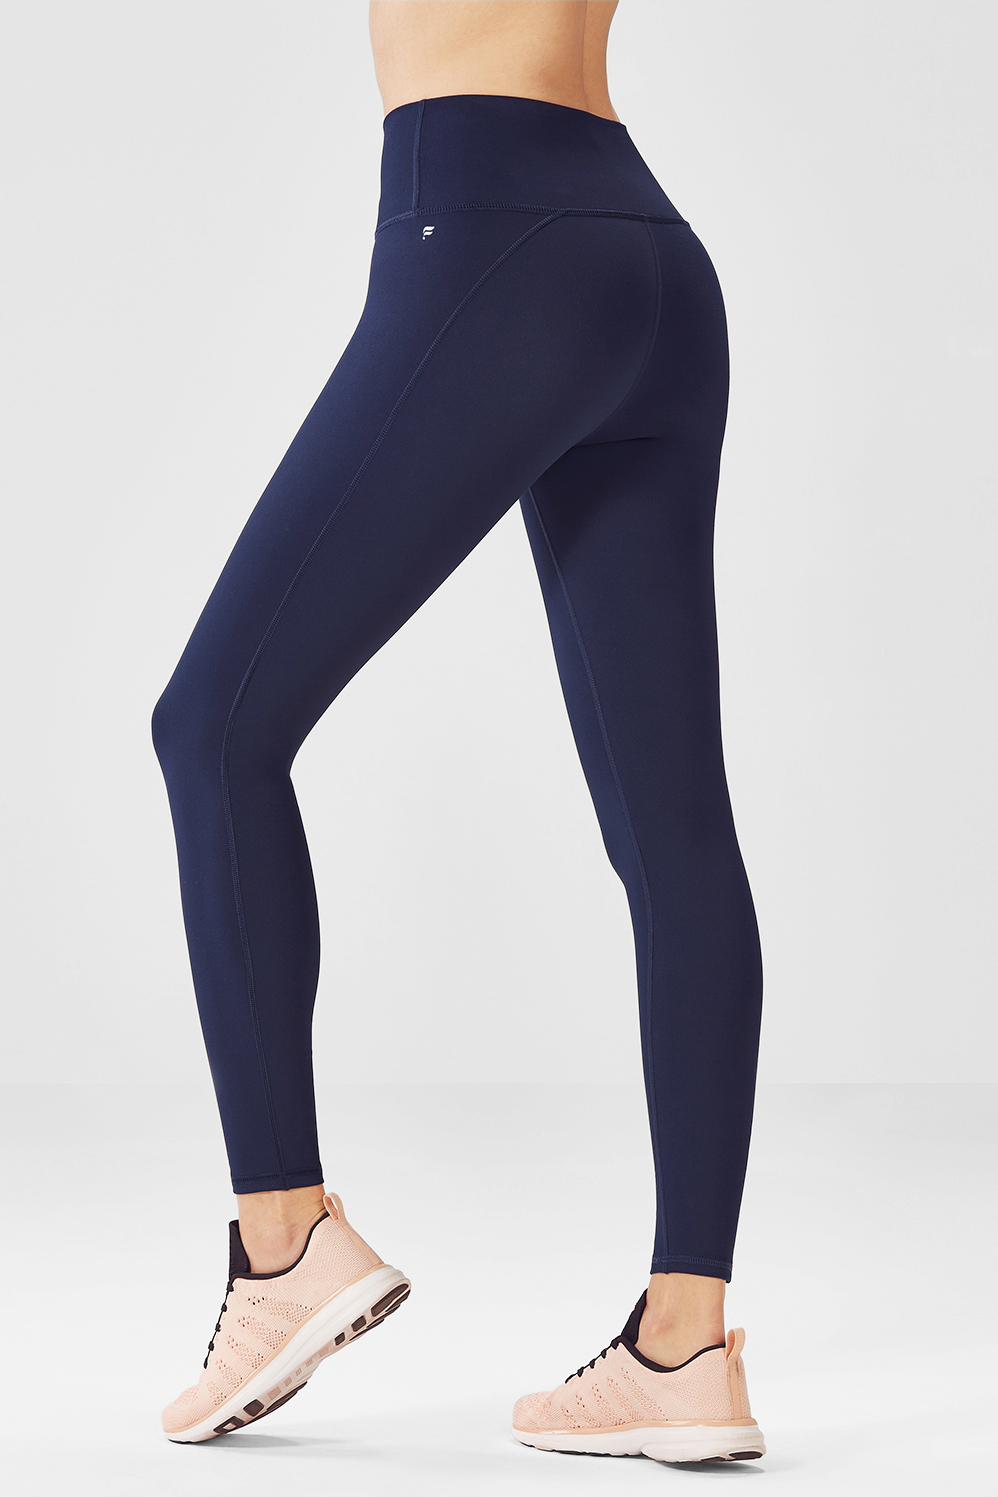 00c3aef0176 High-Waisted Solid PowerHold® 7/8 - Fabletics